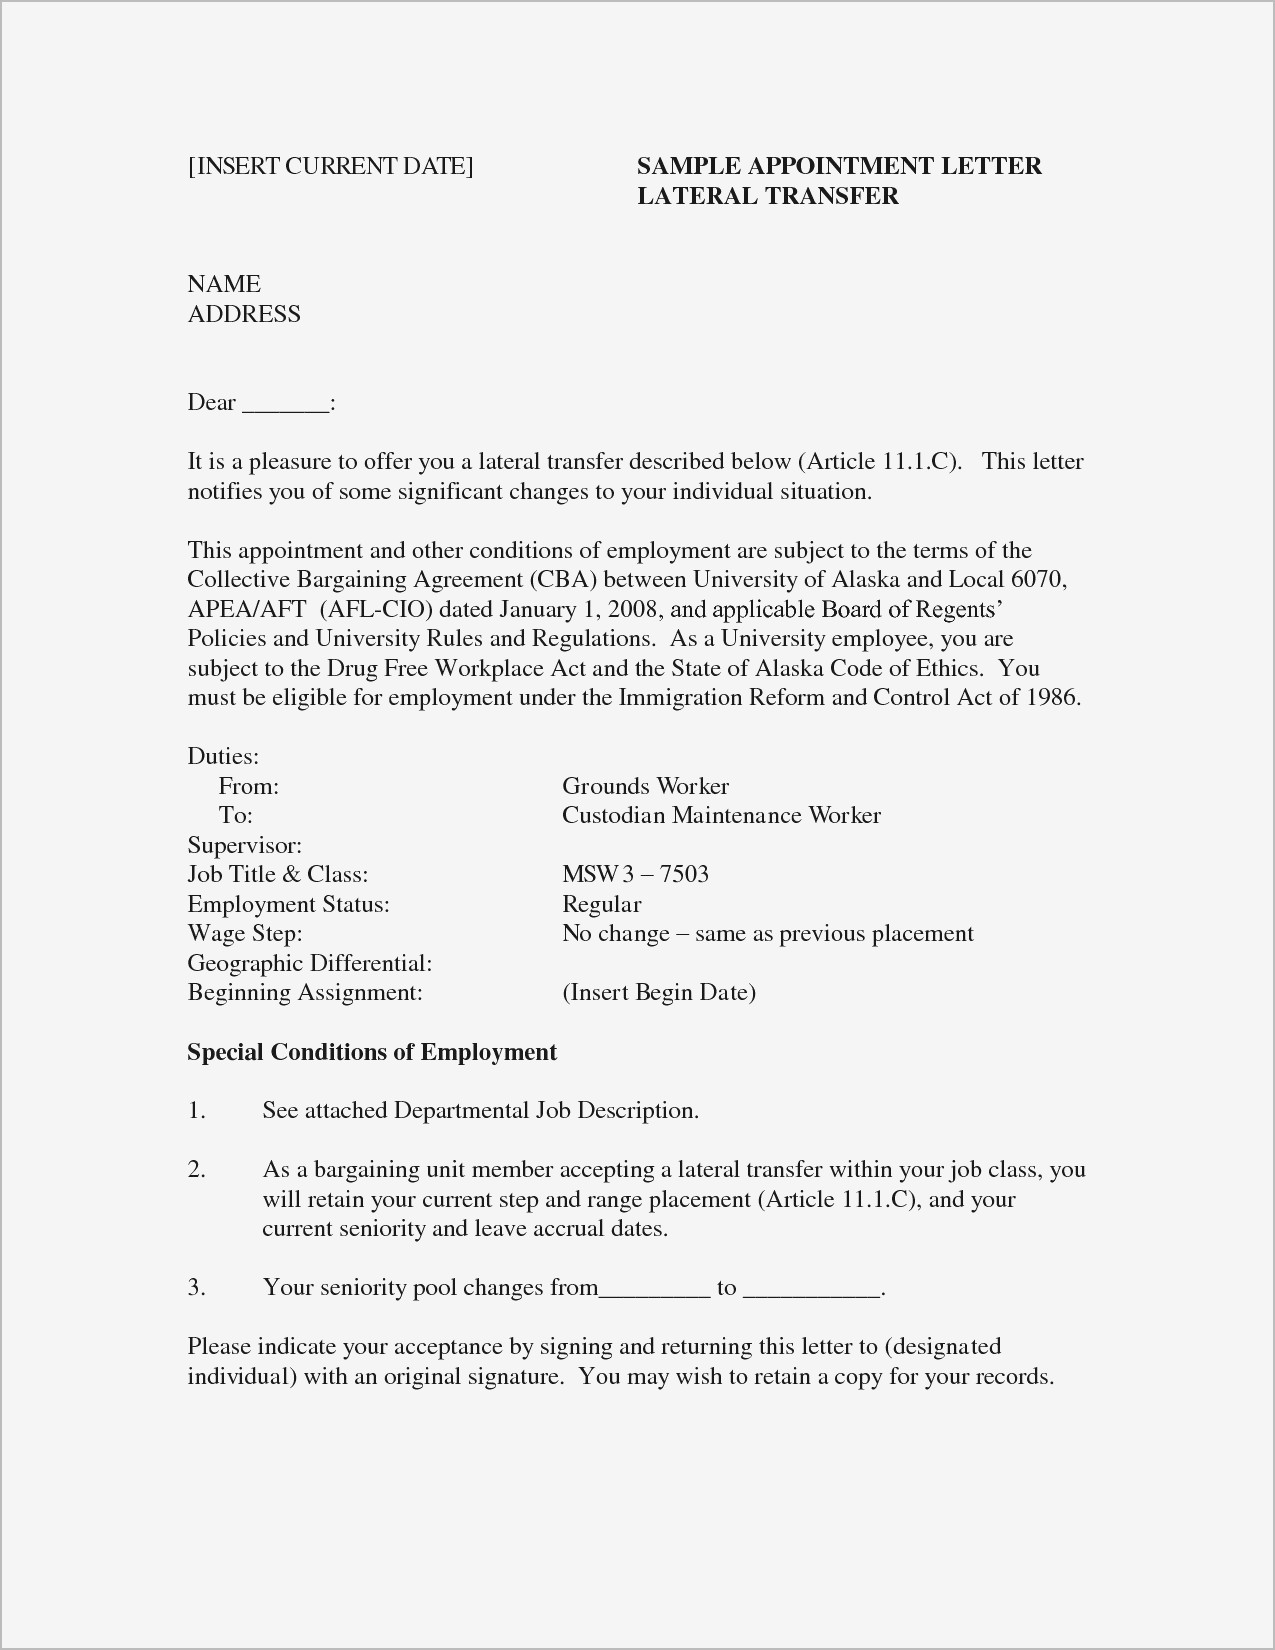 Employment Job Offer Letter Template - Accepting A Job Fer Letter Valid Job Fer Letter Template Us Copy